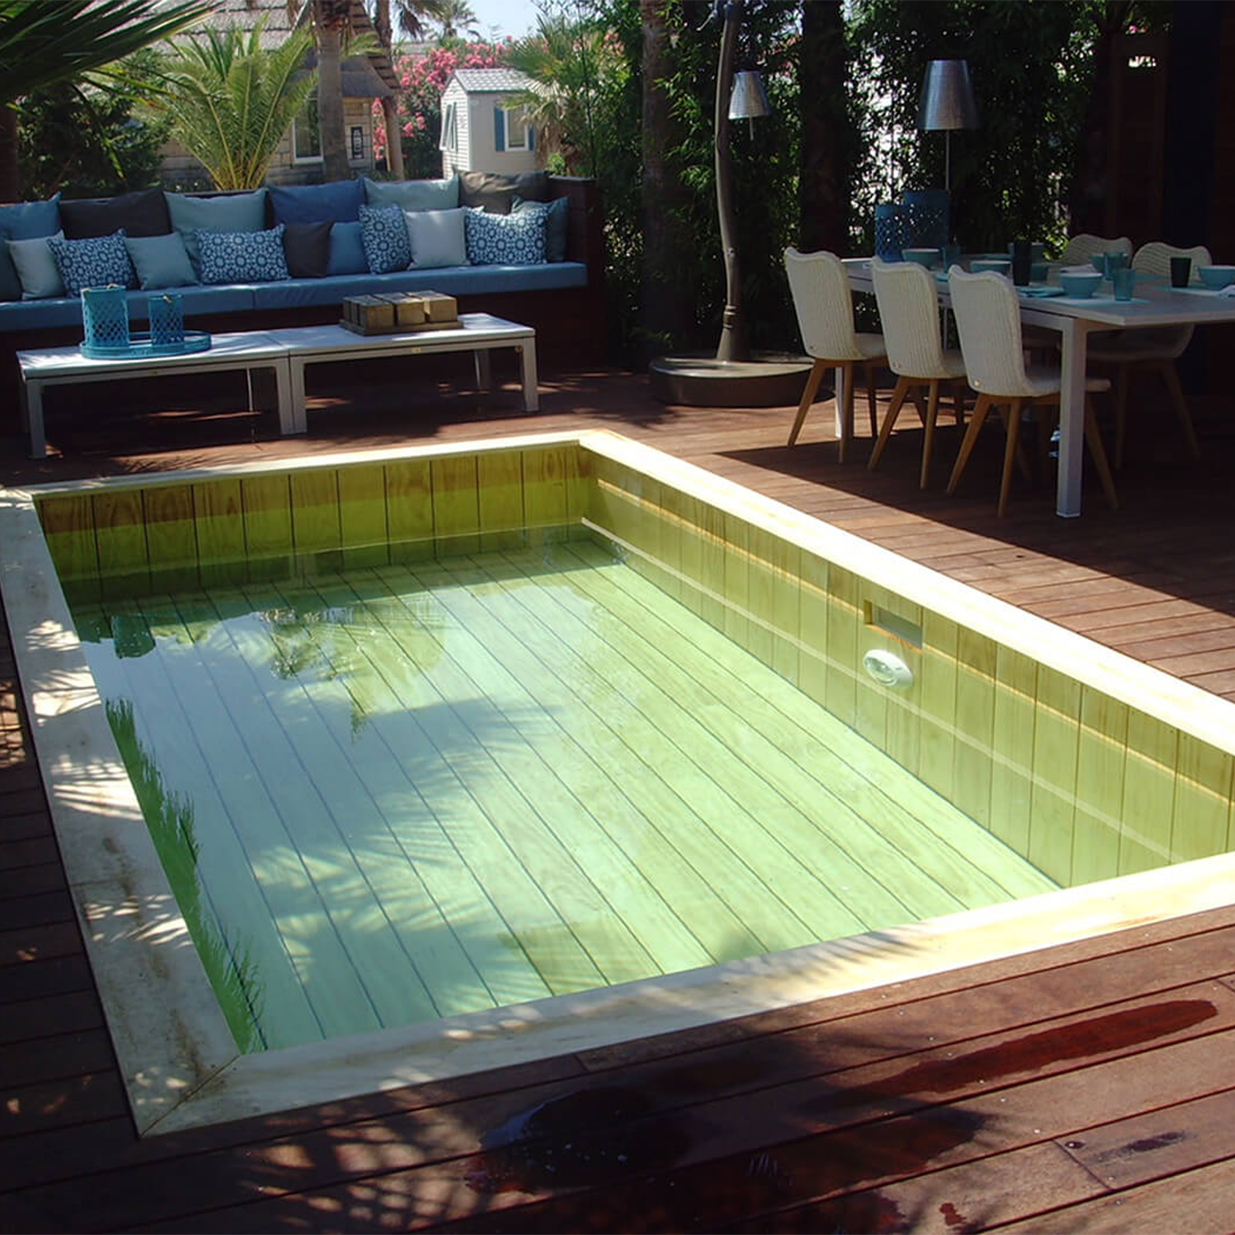 Swimming pool made out of Accoya wood